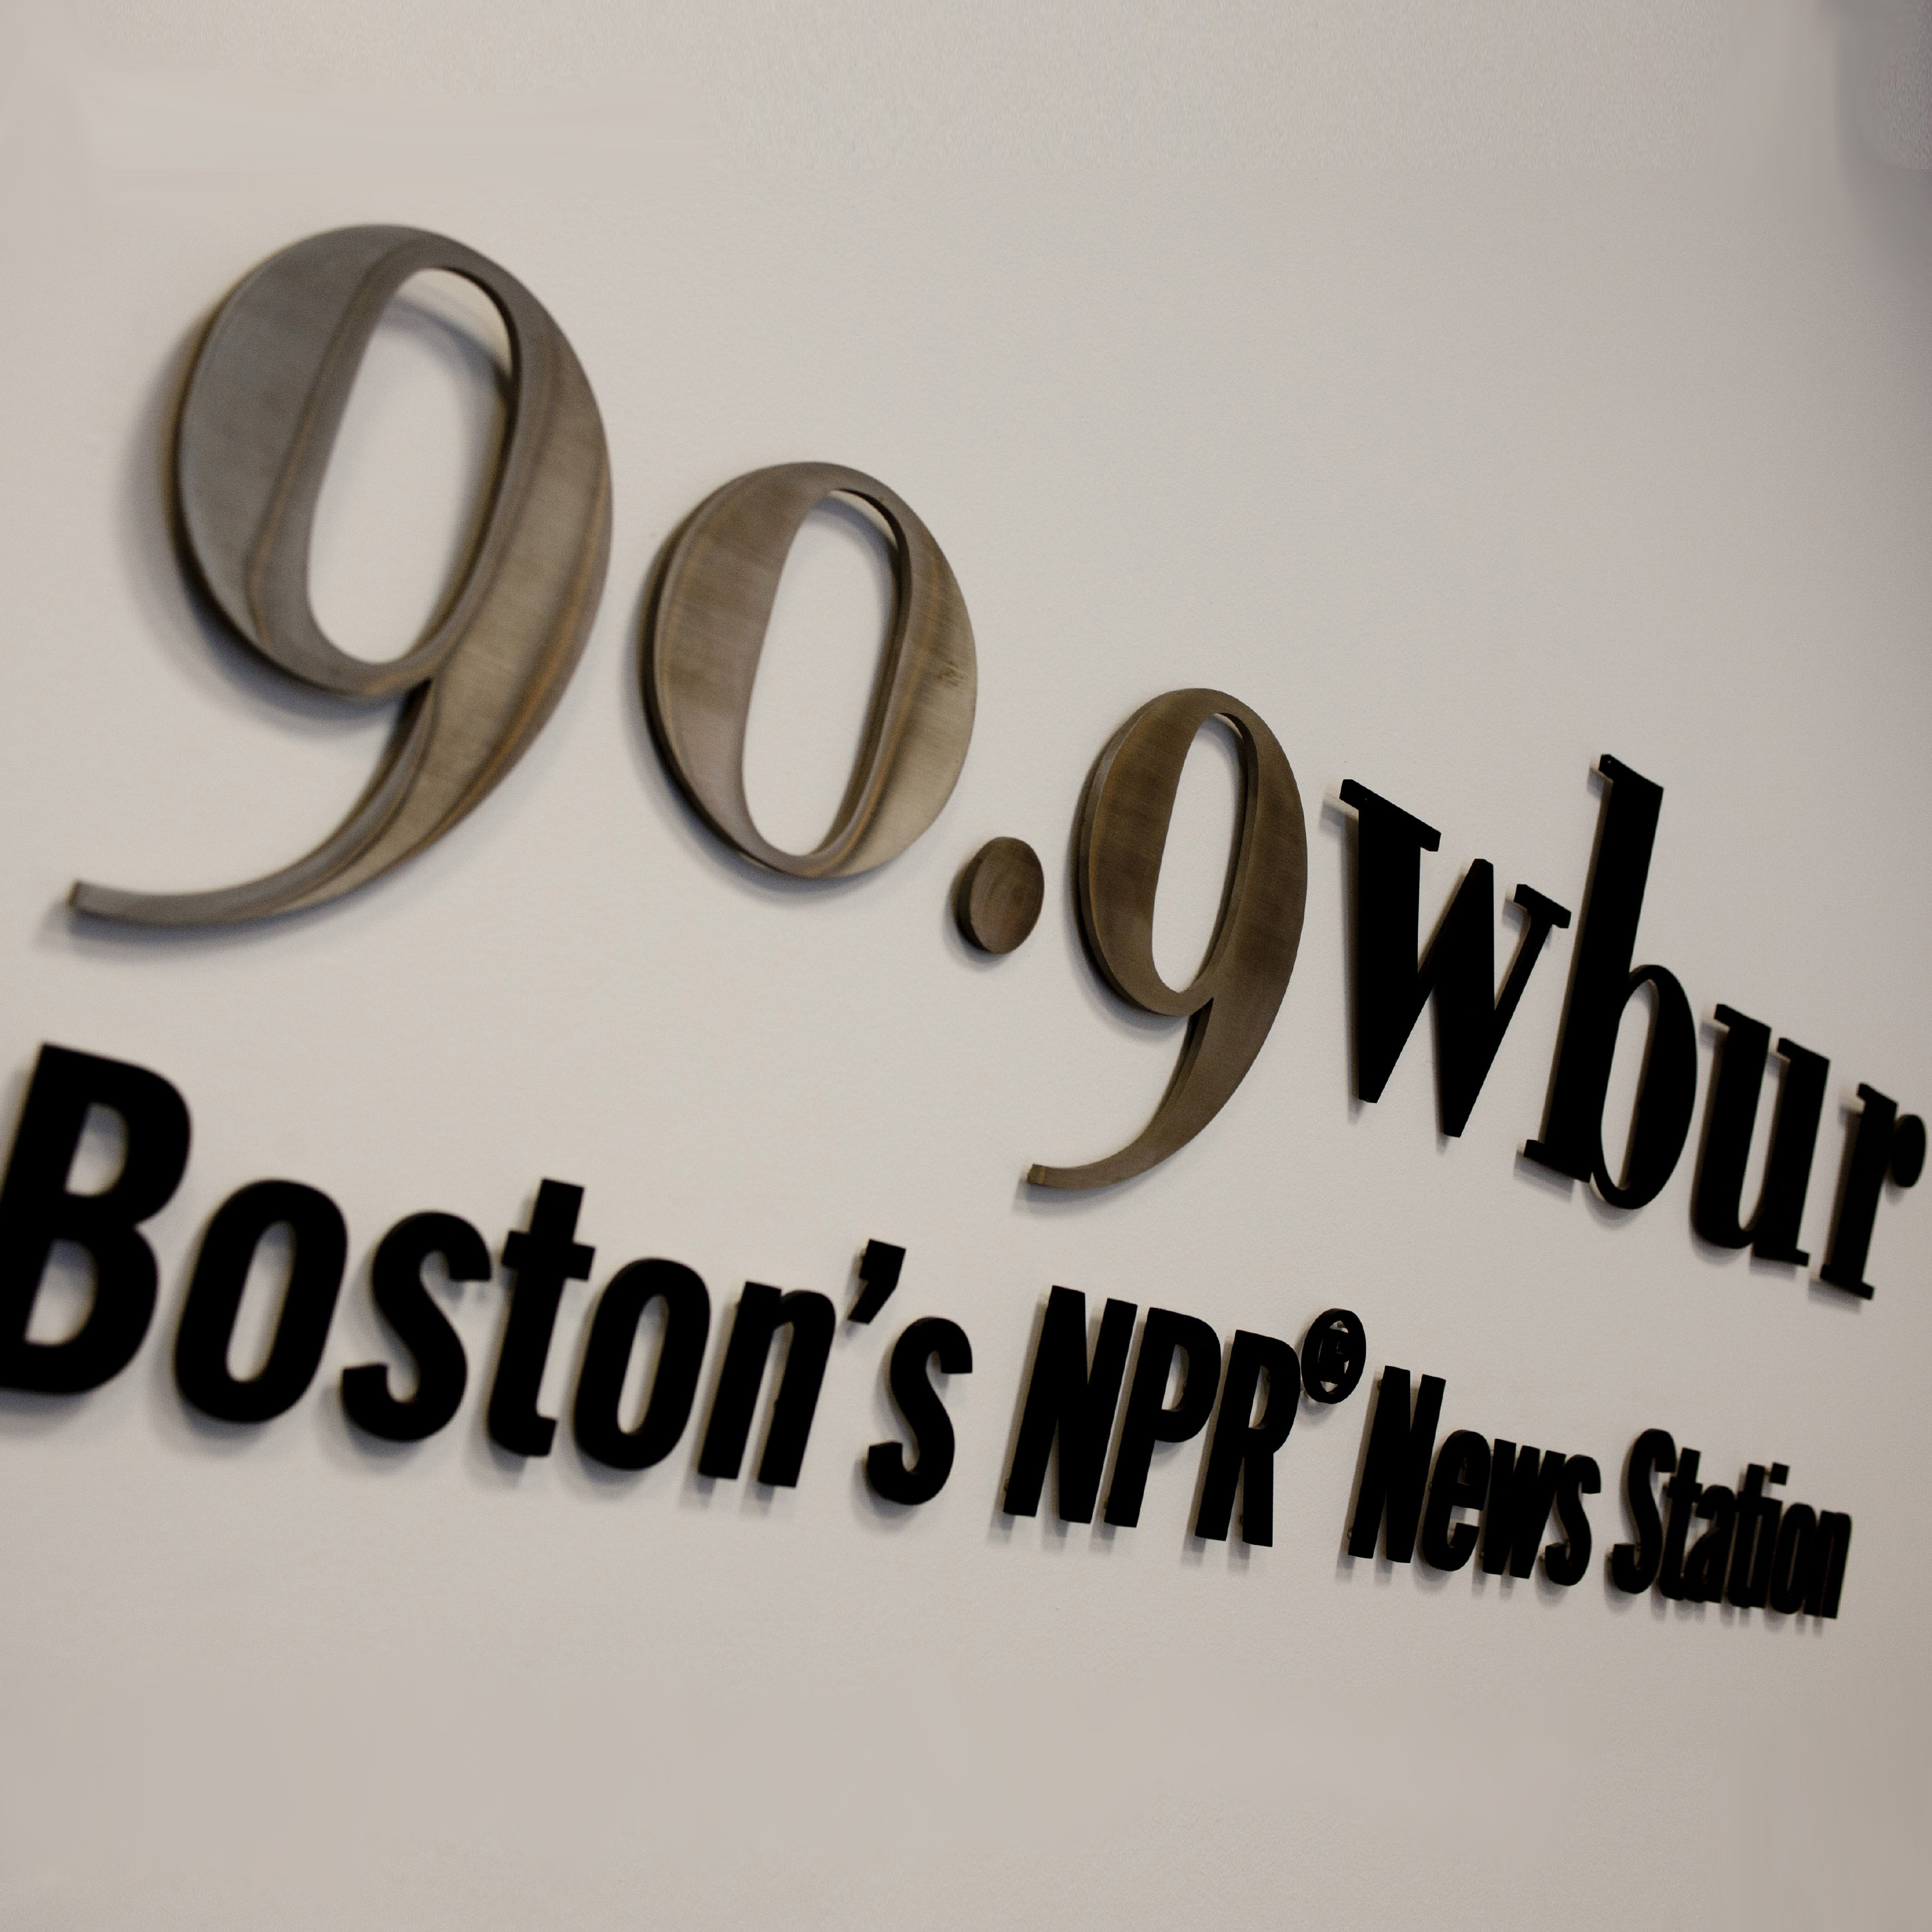 Boston University BU, WBUR, BU trustee Robert Hildreth, record $1 million gift, BU national Public Radio station